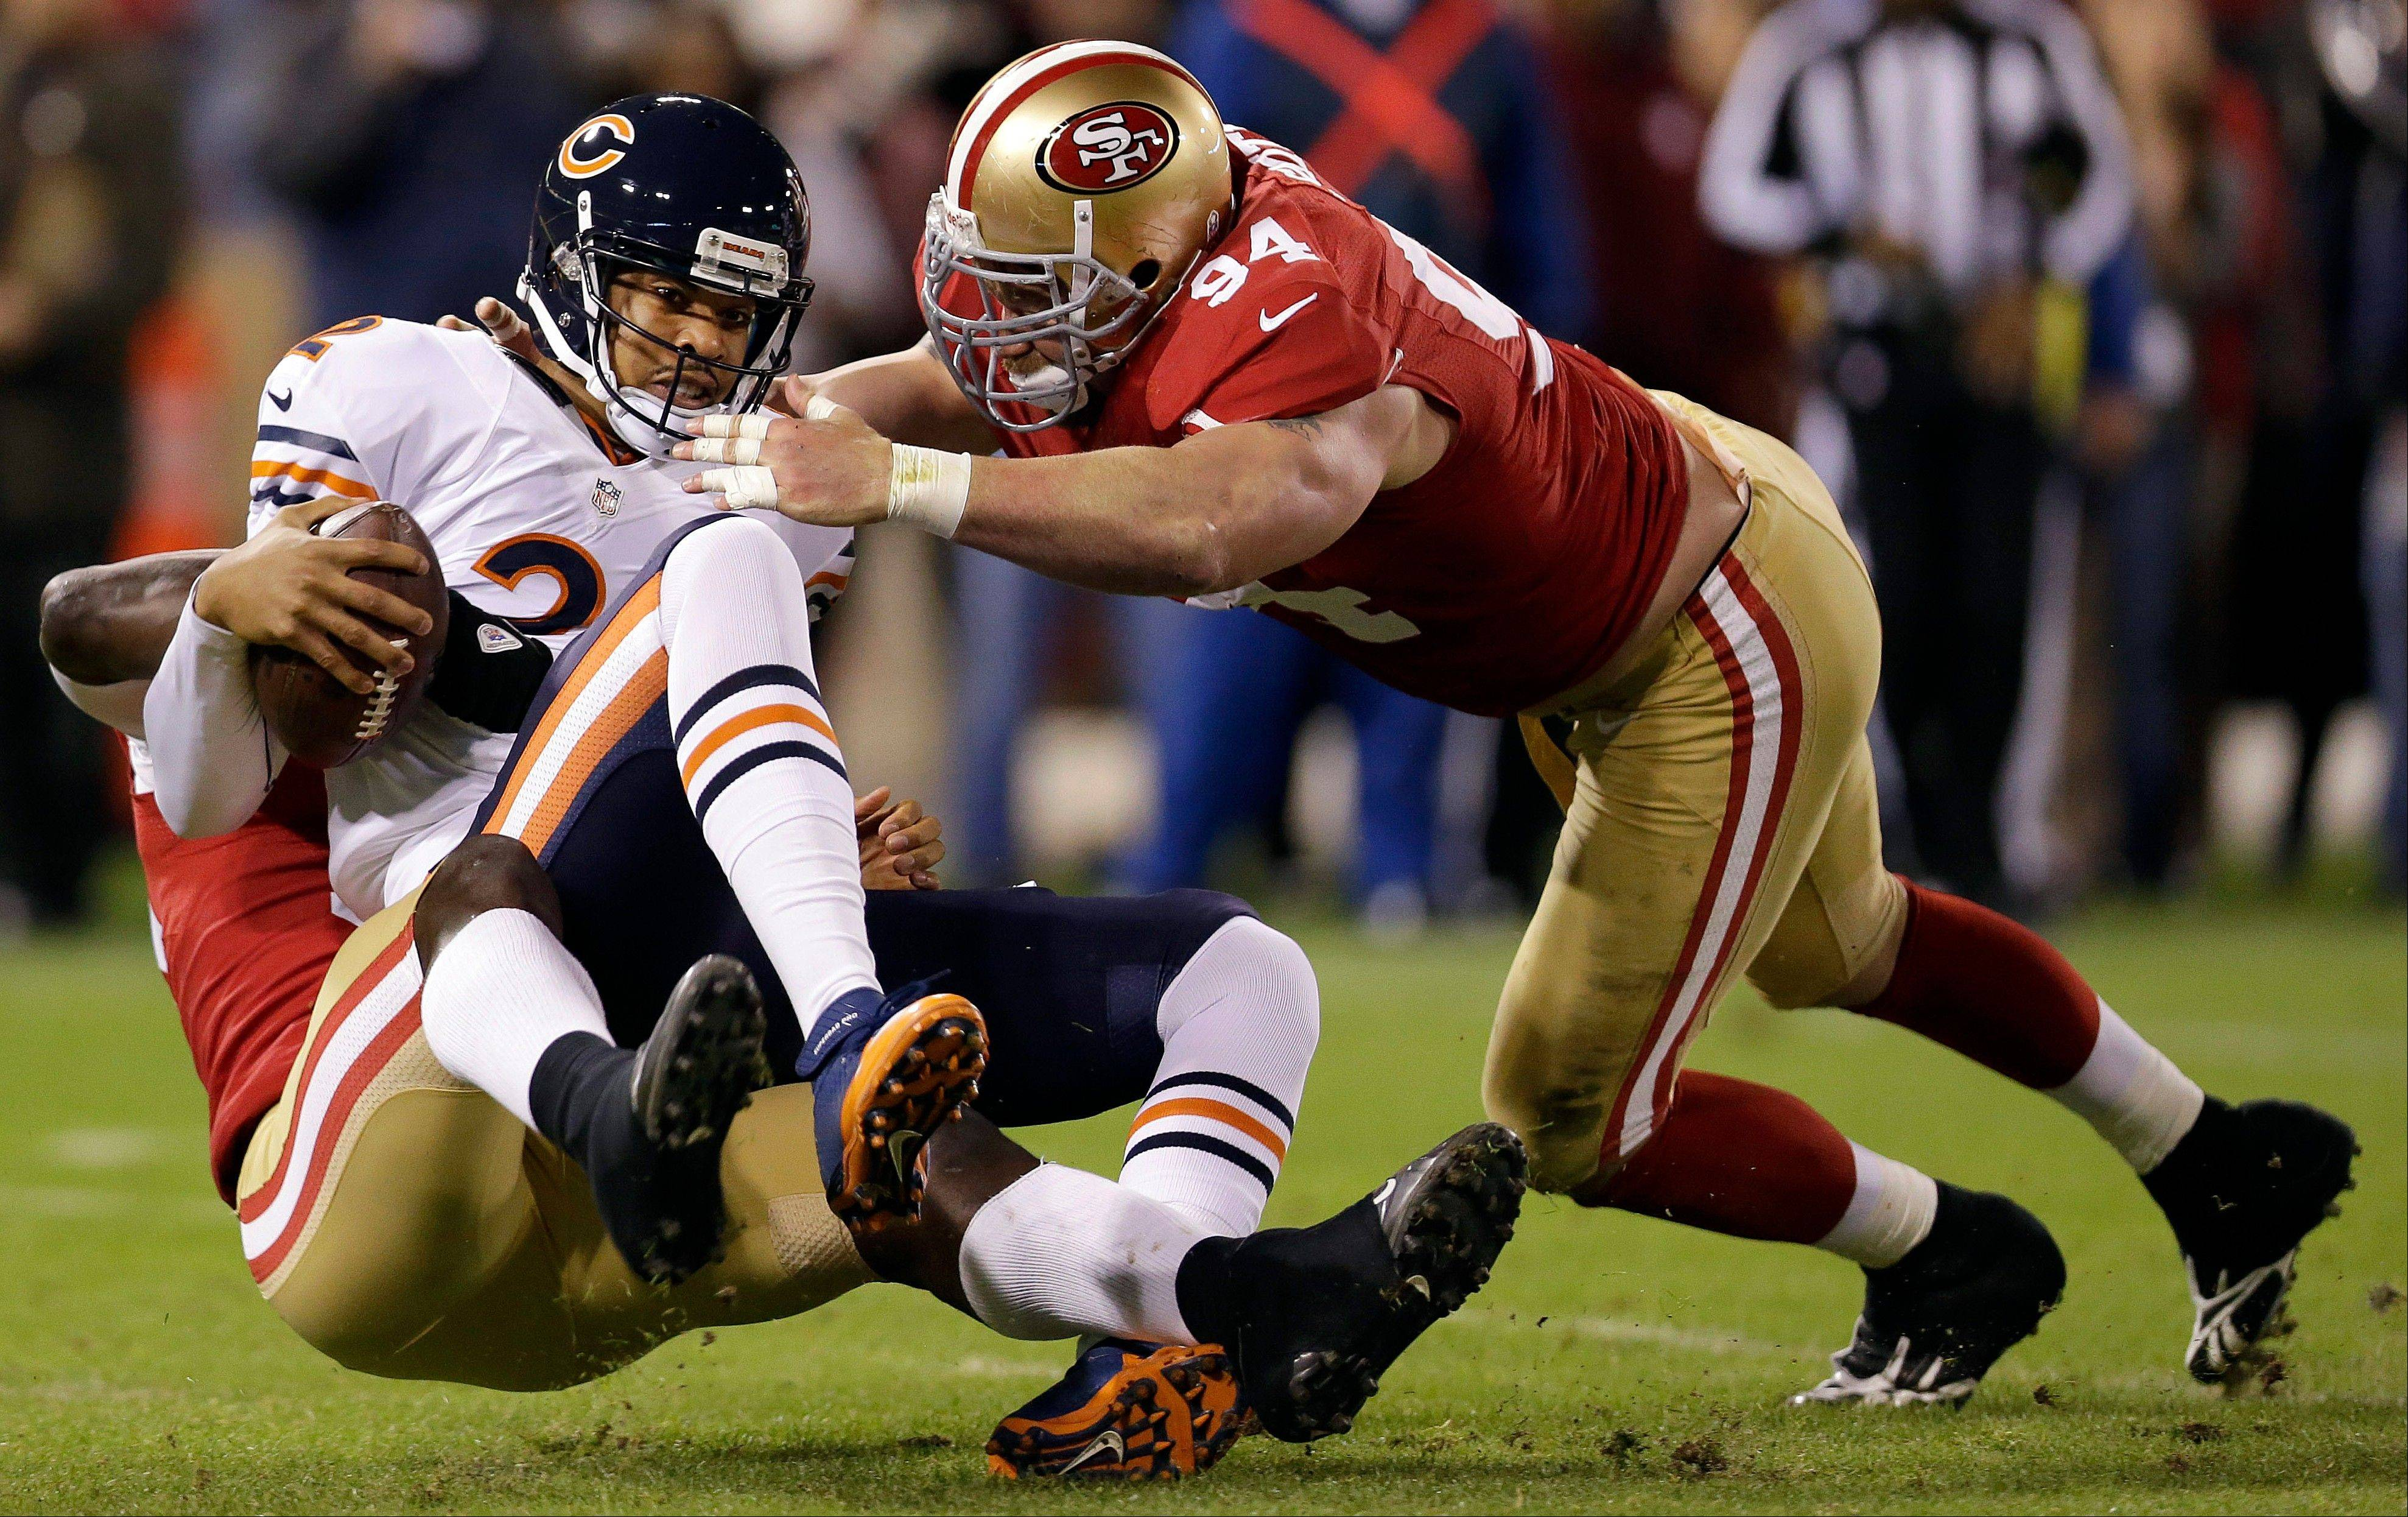 Bears quarterback Jason Campbell (2) is sacked by San Francisco 49ers linebacker Aldon Smith, left, as defensive tackle Justin Smith (94) converges during the first quarter of the game last night. The scene was repeated several times.